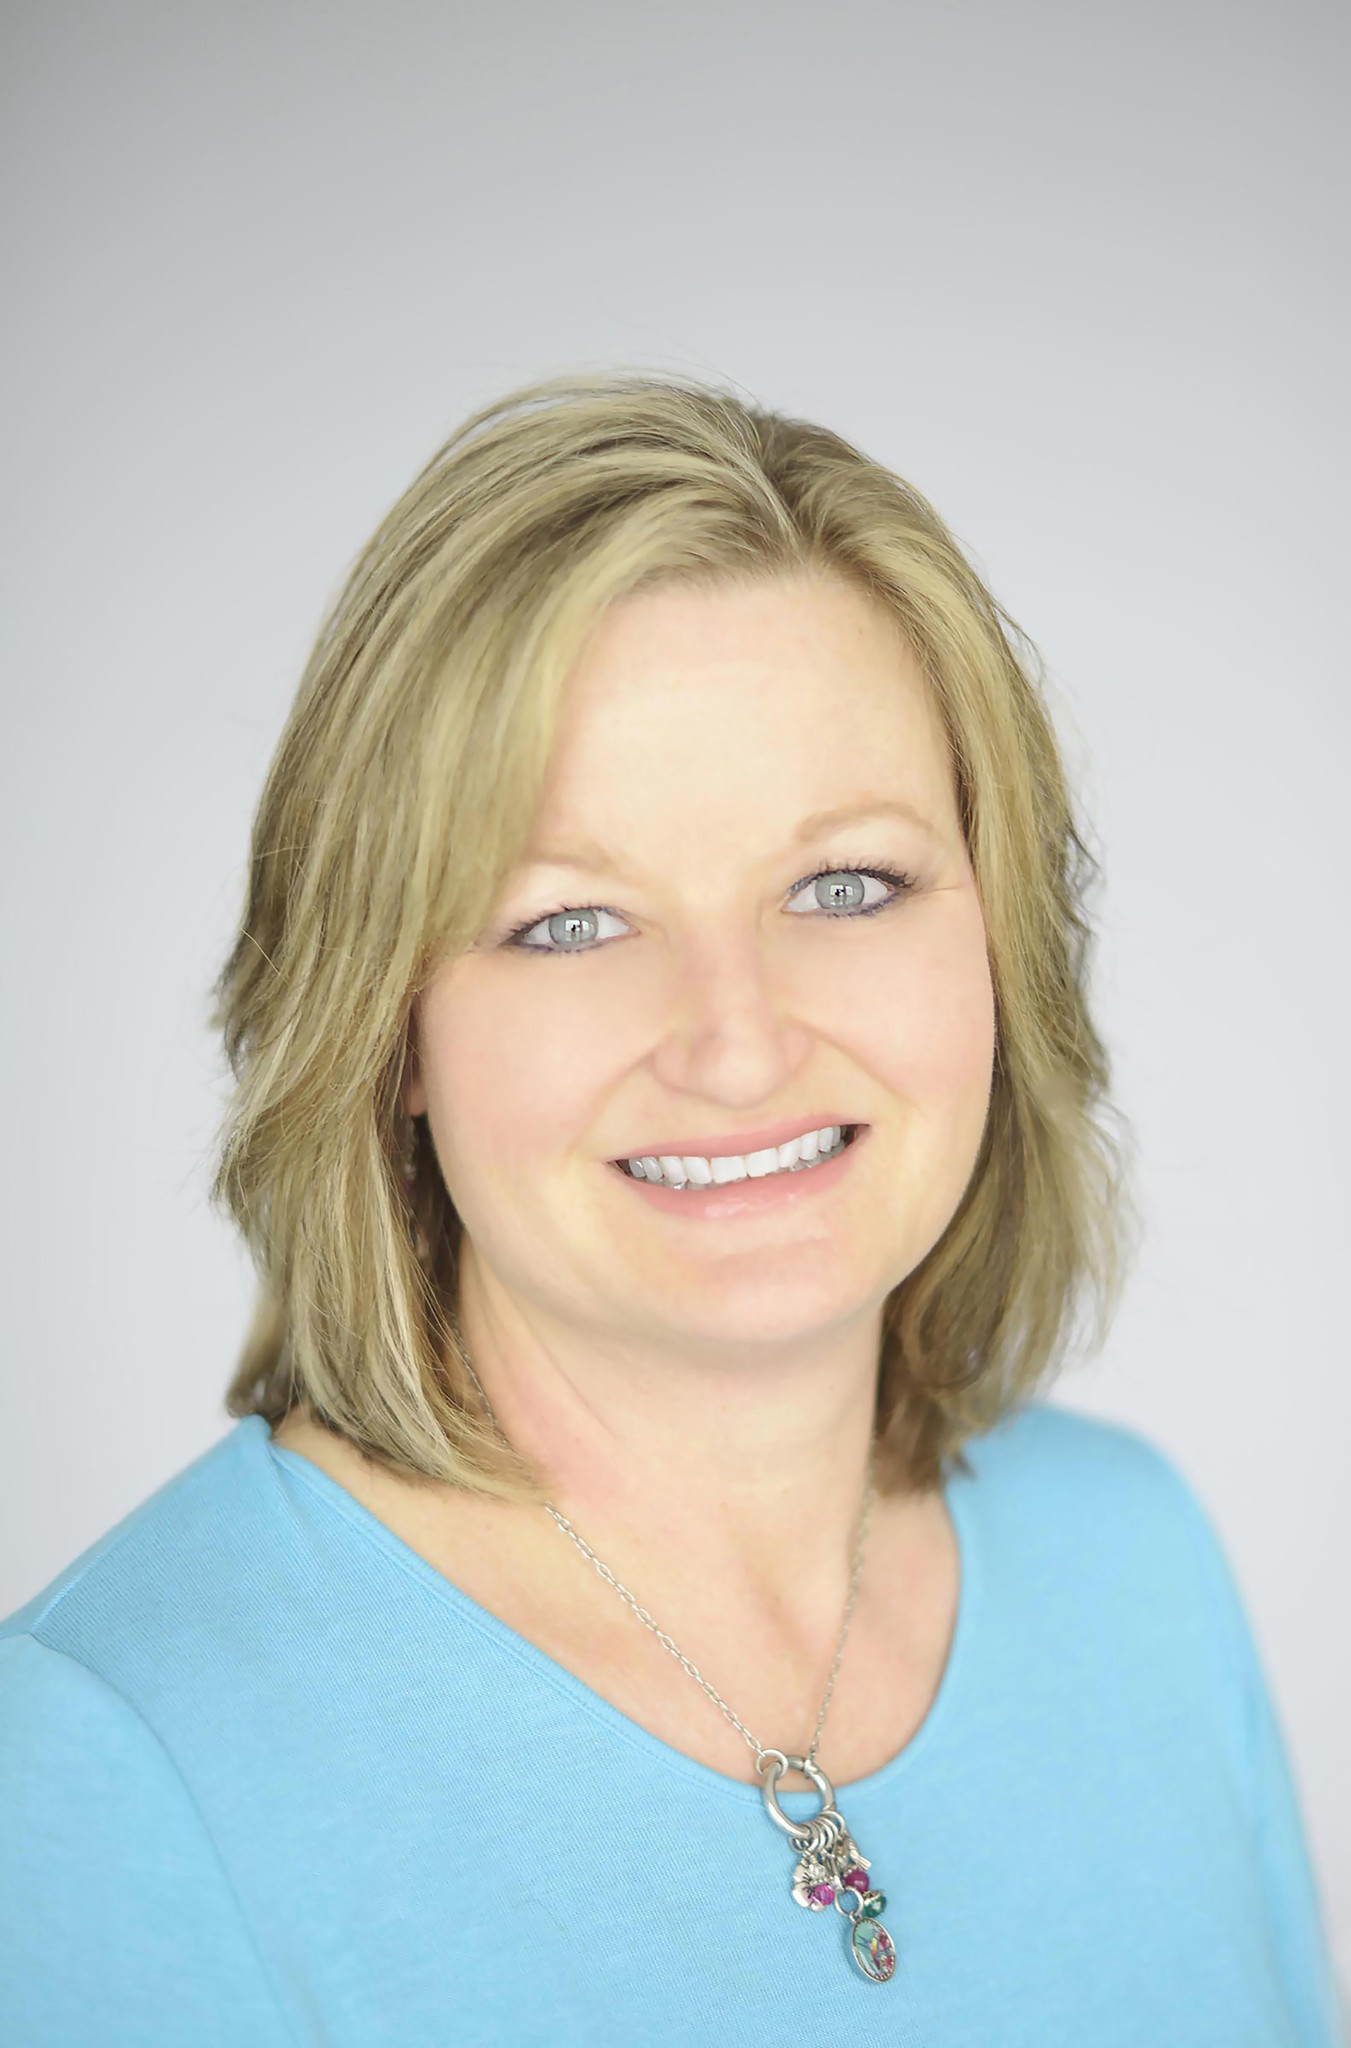 Board Of Certification For Emergency Nursing Announces New Executive